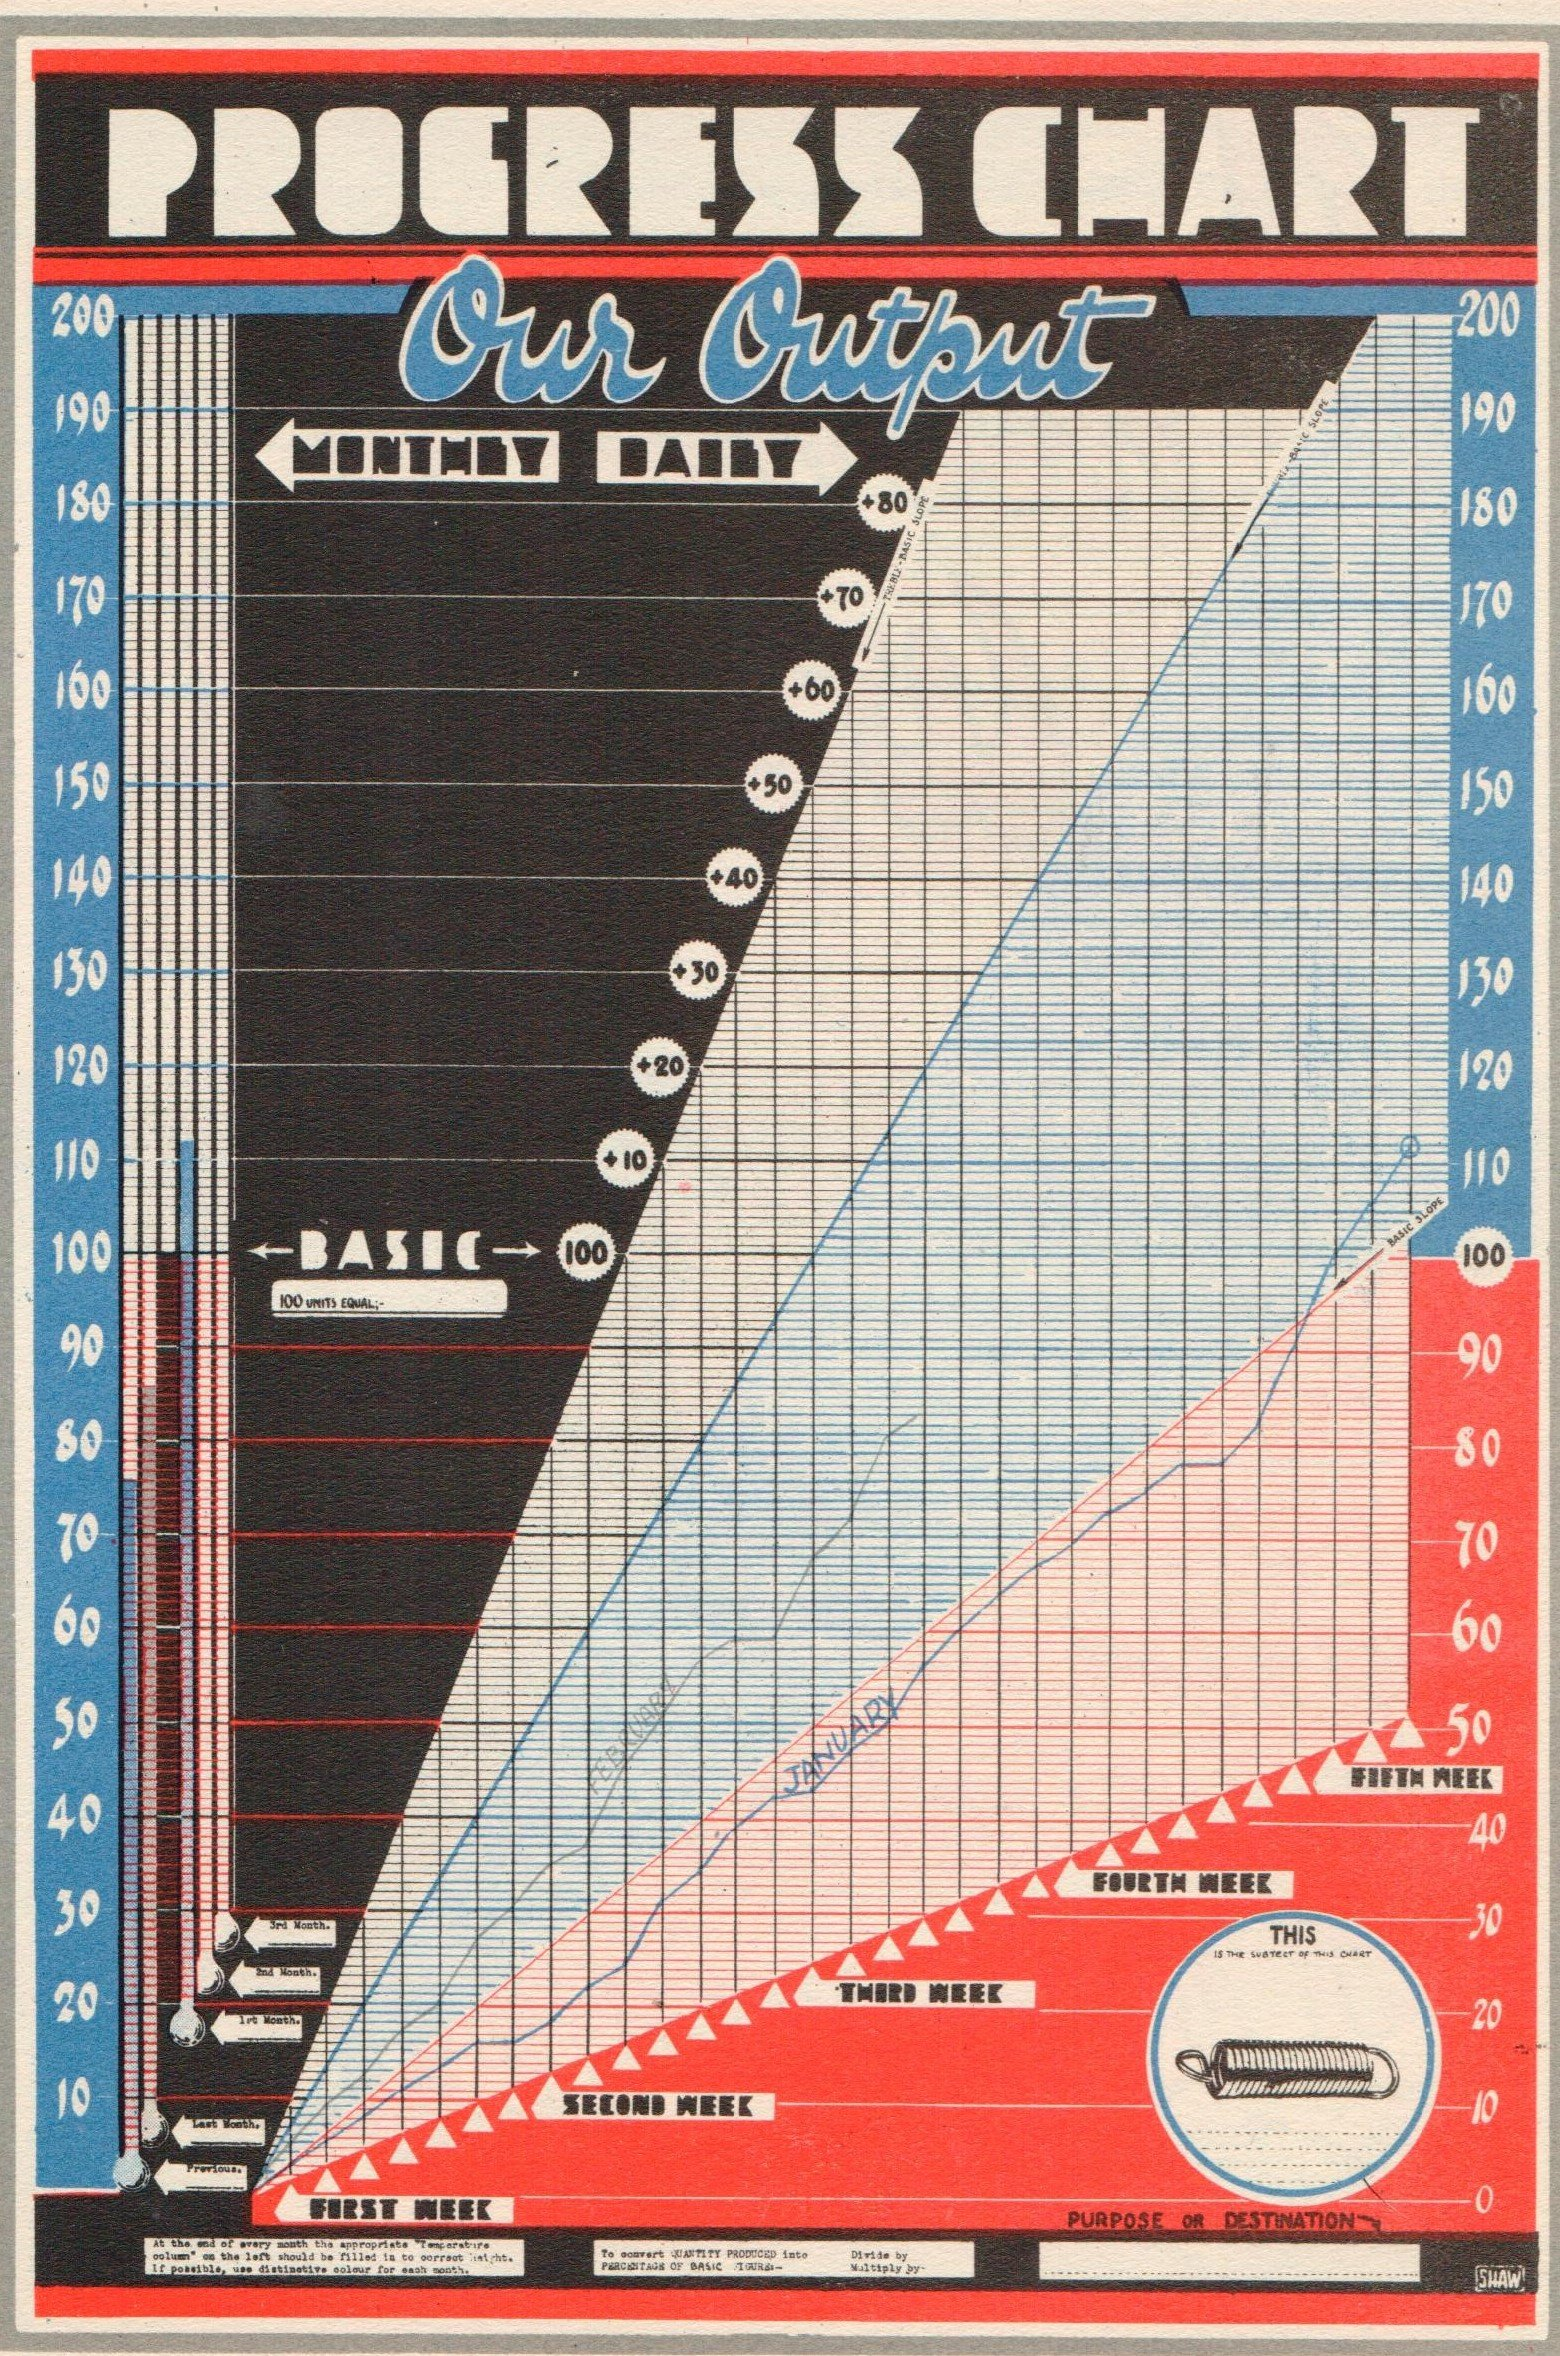 Output progress chart from CK Shaw,  Industrial Publicity,  London: C&J Temple, 1944, probably copyright by the estate of CK Shaw.